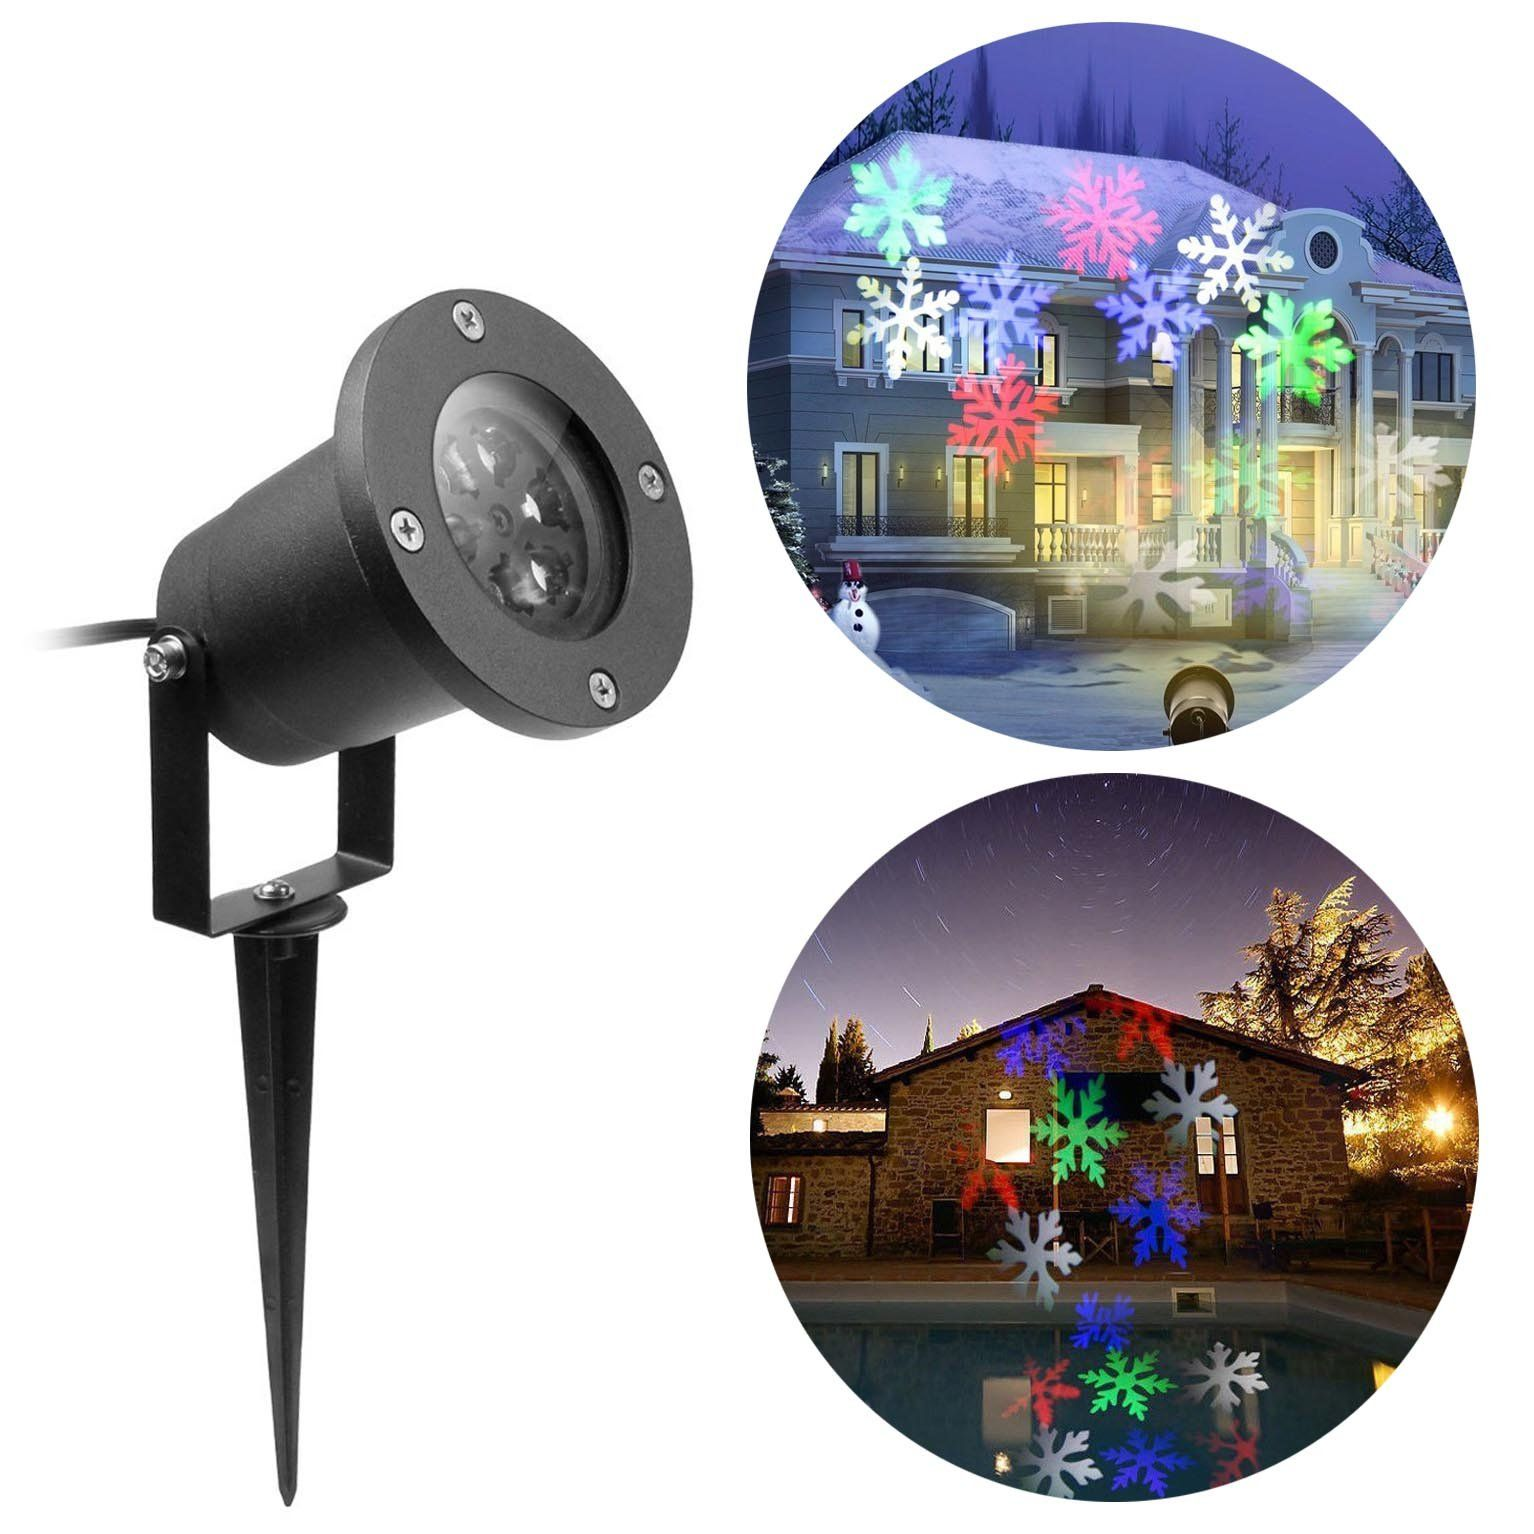 LED Christmas Light Projection Waterproof Landscape Snowflake ...